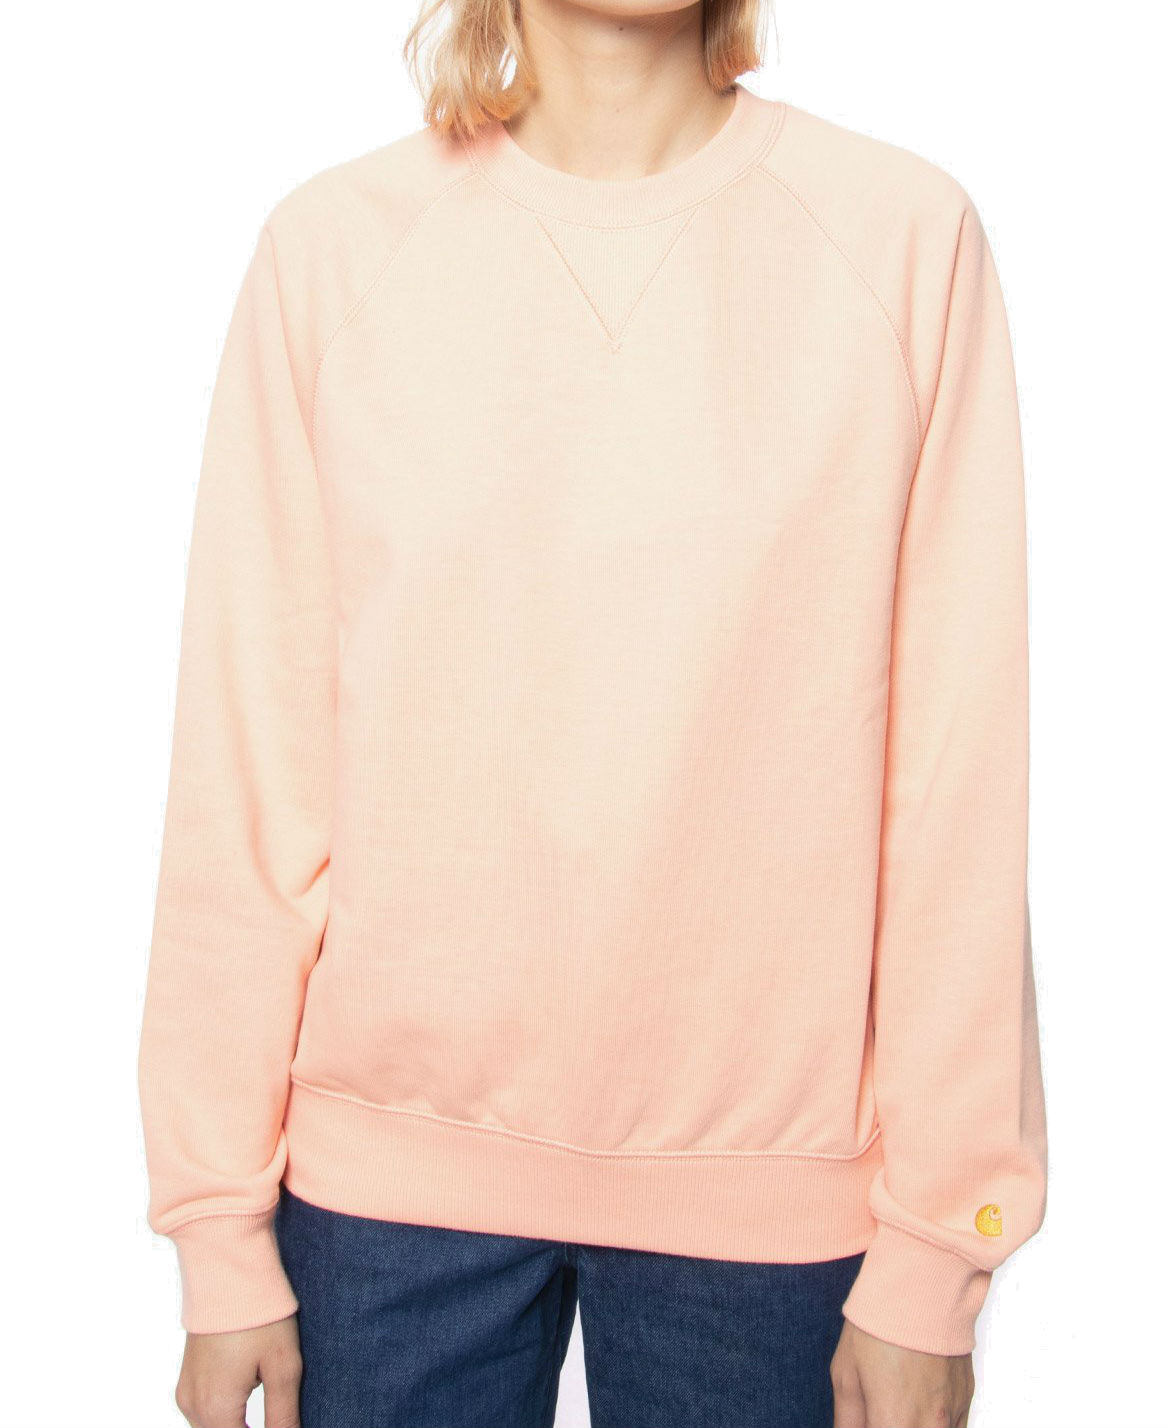 CARHARTT WIP W' CHASE SWEATER - PEACH/GOLD